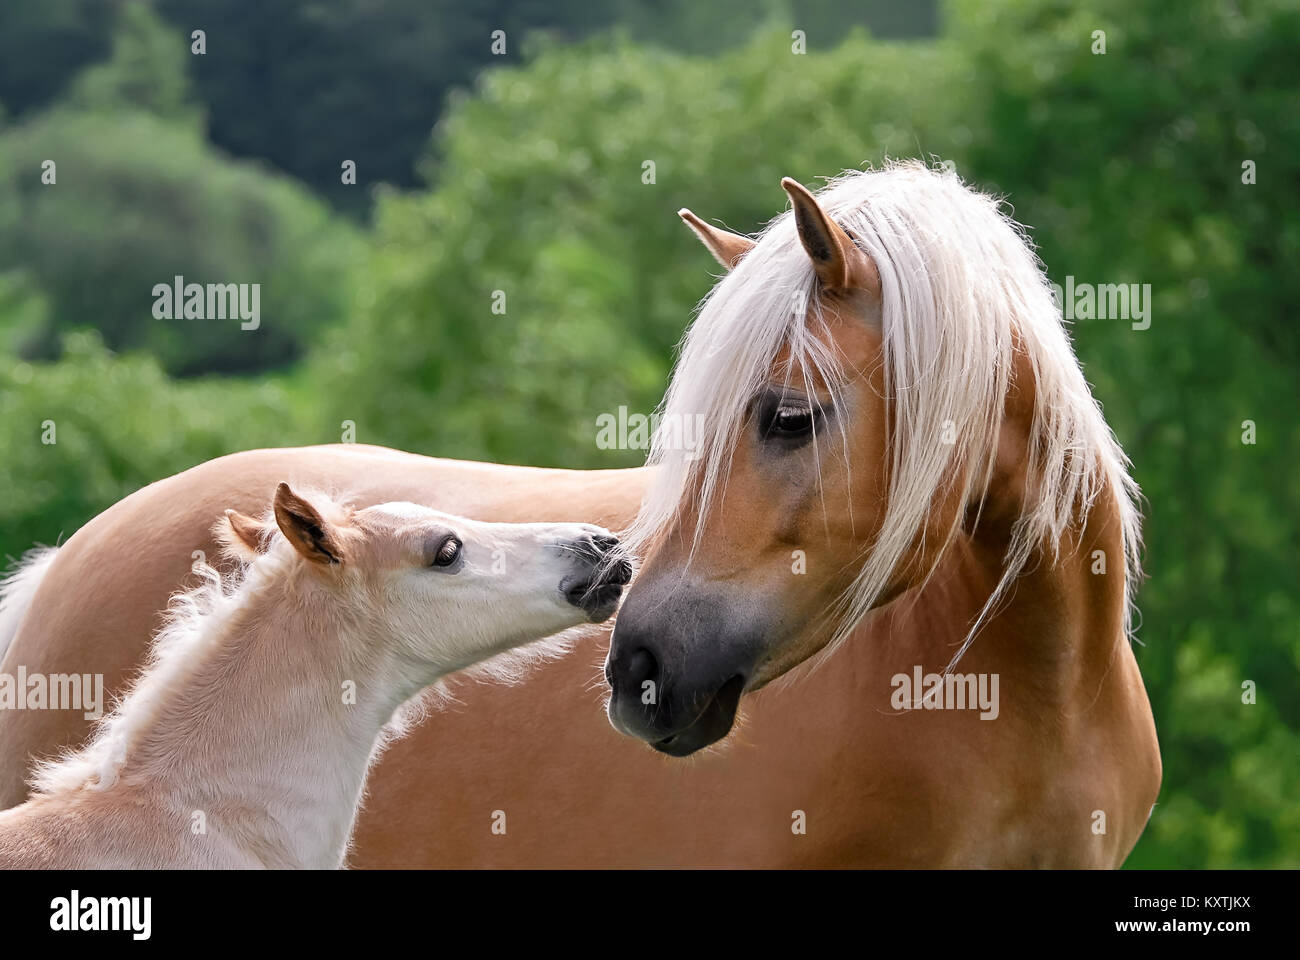 Haflinger horses, mare with foal side by side, cuddling, the cute baby avelignese pony confidently turns to its - Stock Image